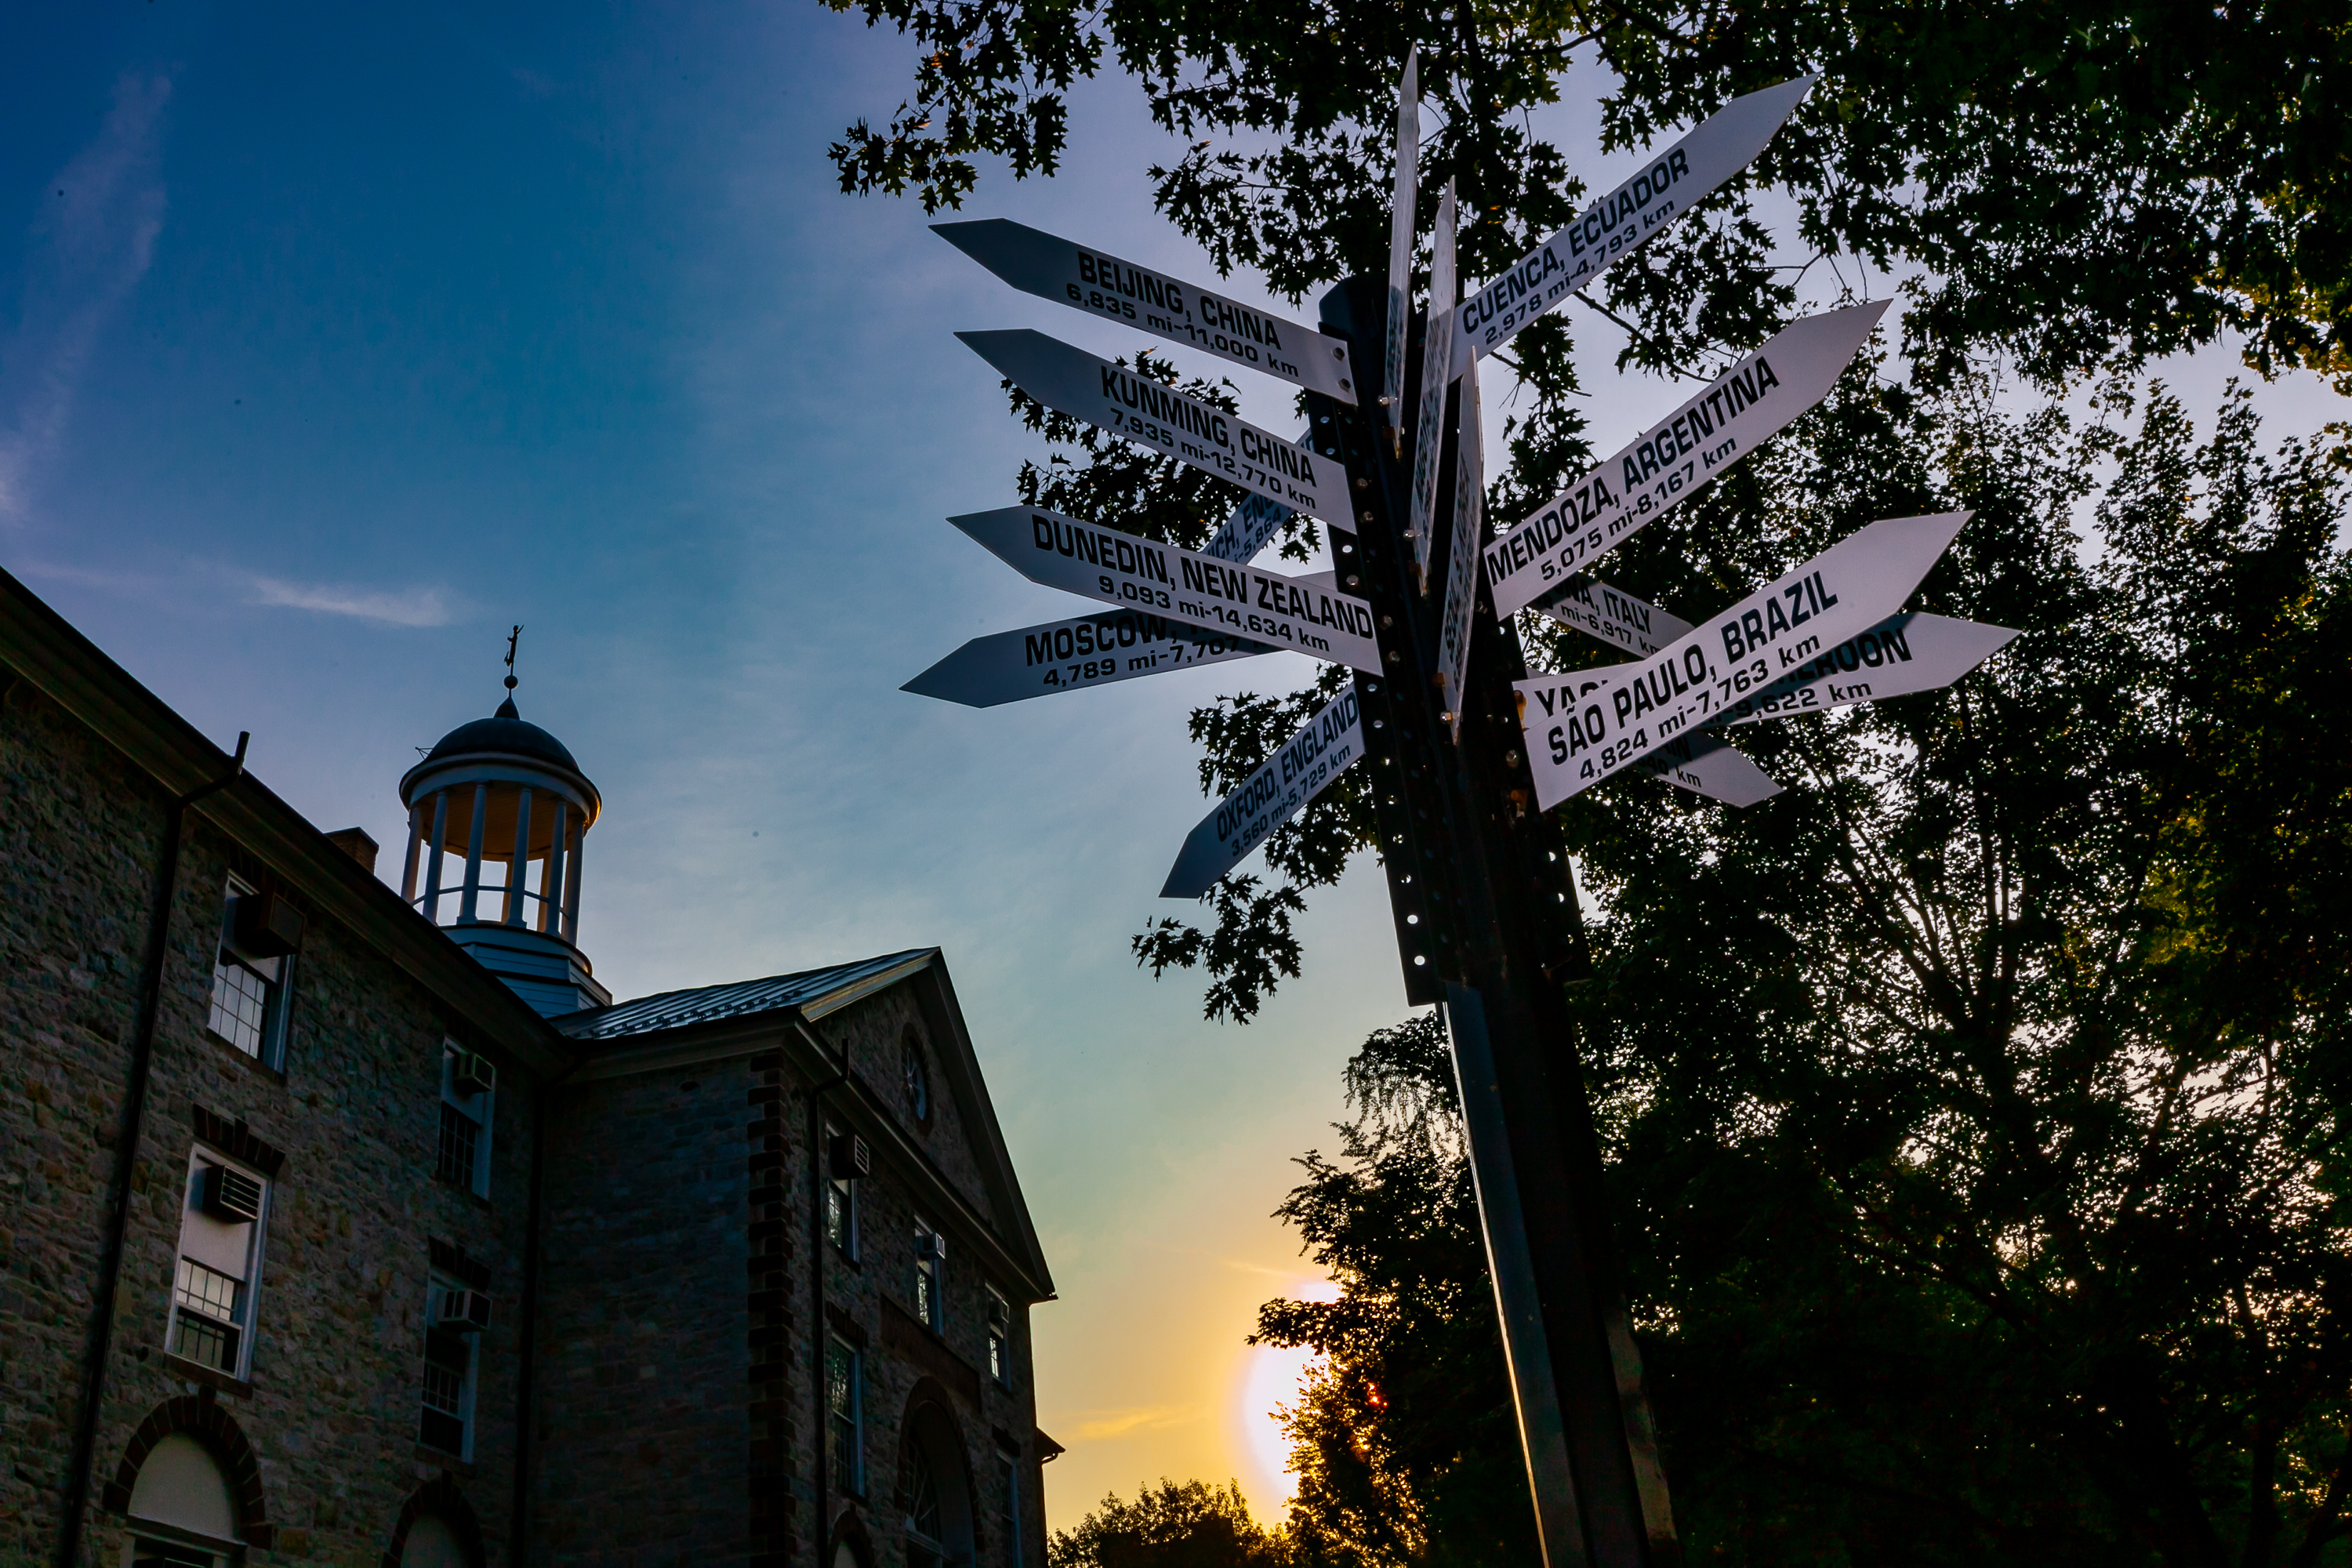 A signpost on Dickinson's academic quad lists the distance between the Carlisle, Pa. campus and various points around the world. It serves as a symbol of how global study and engagement is a cornerstone of the Dickinson experience.